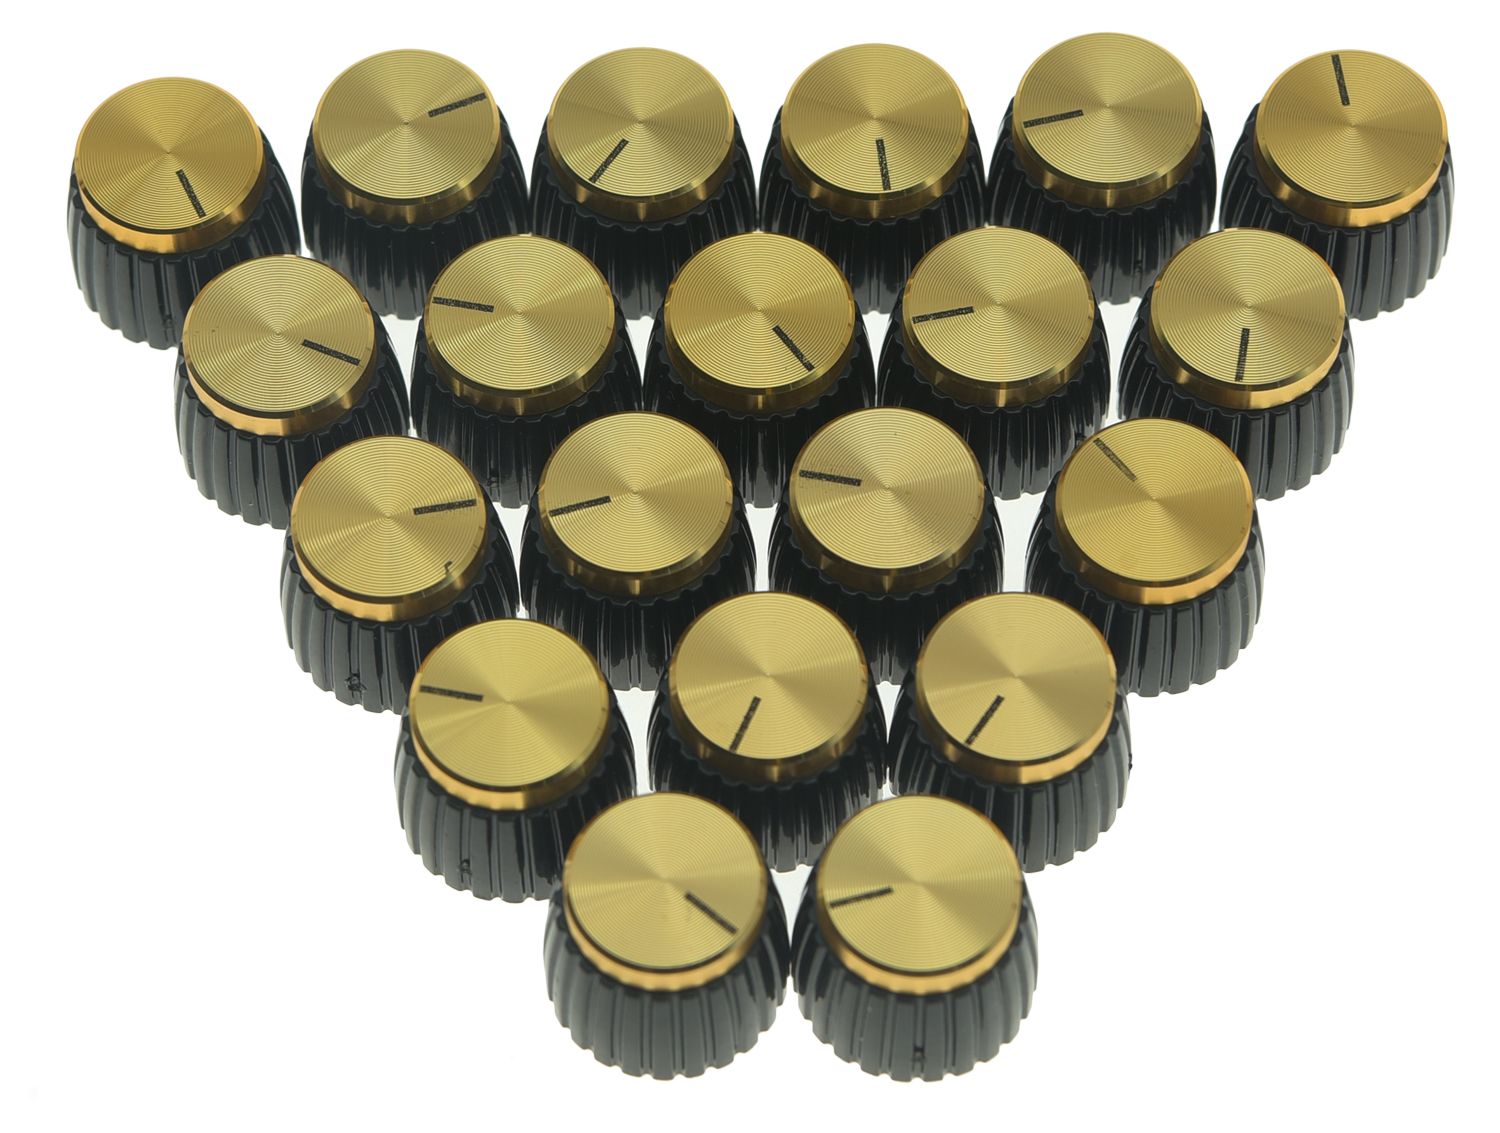 Guitar Effects Pedal Stompbox Control Knobs Set of 3 Gold Marshall Amp